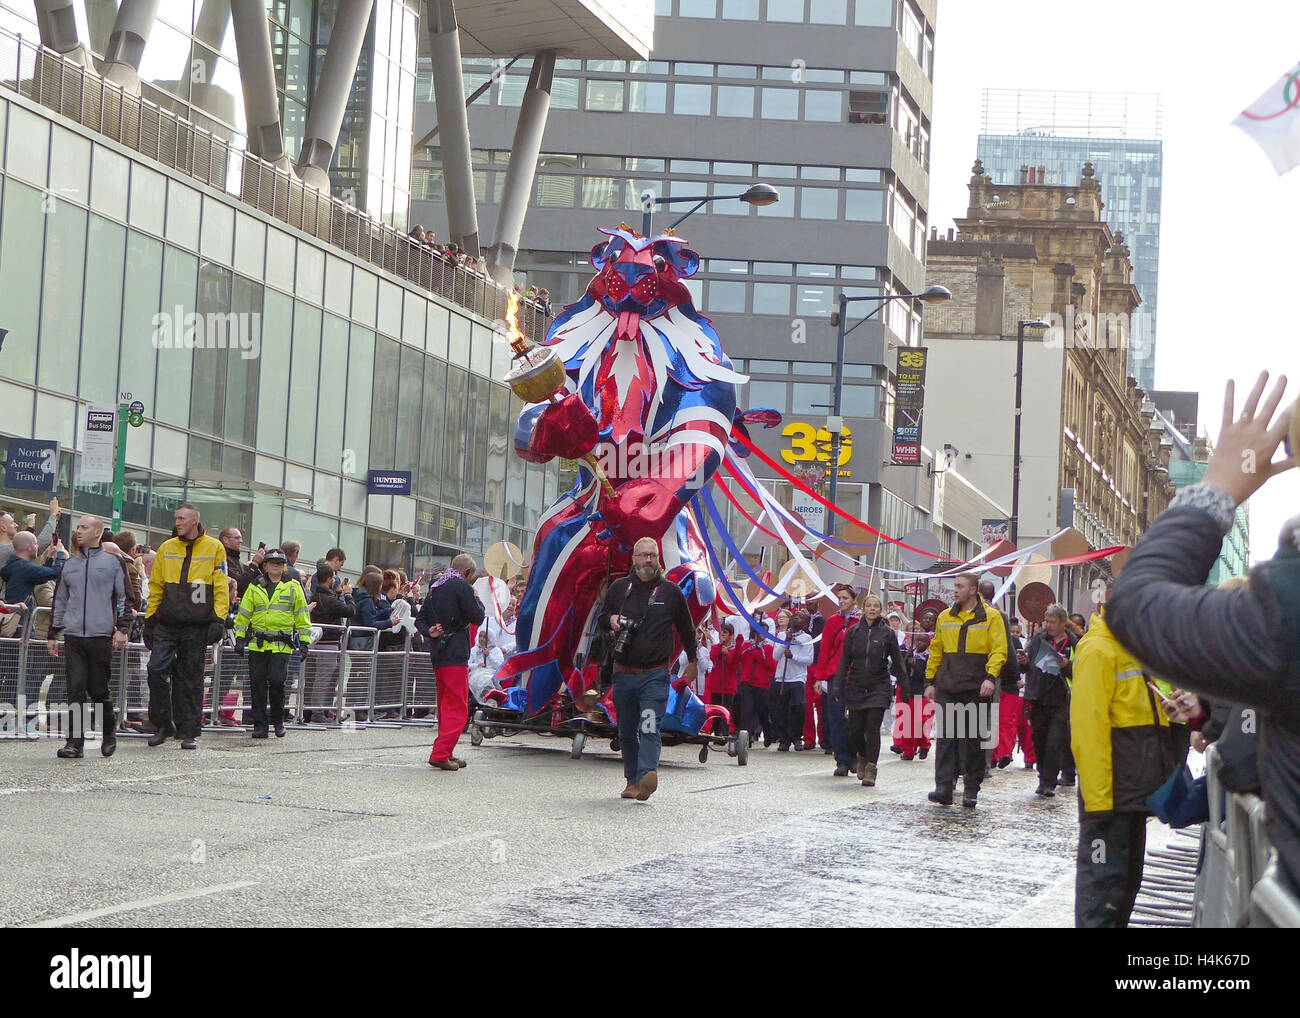 Manchester, UK. 17th October, 2016. The Olympic and Paralympic heroes parade wound its way through Manchester City Stock Photo